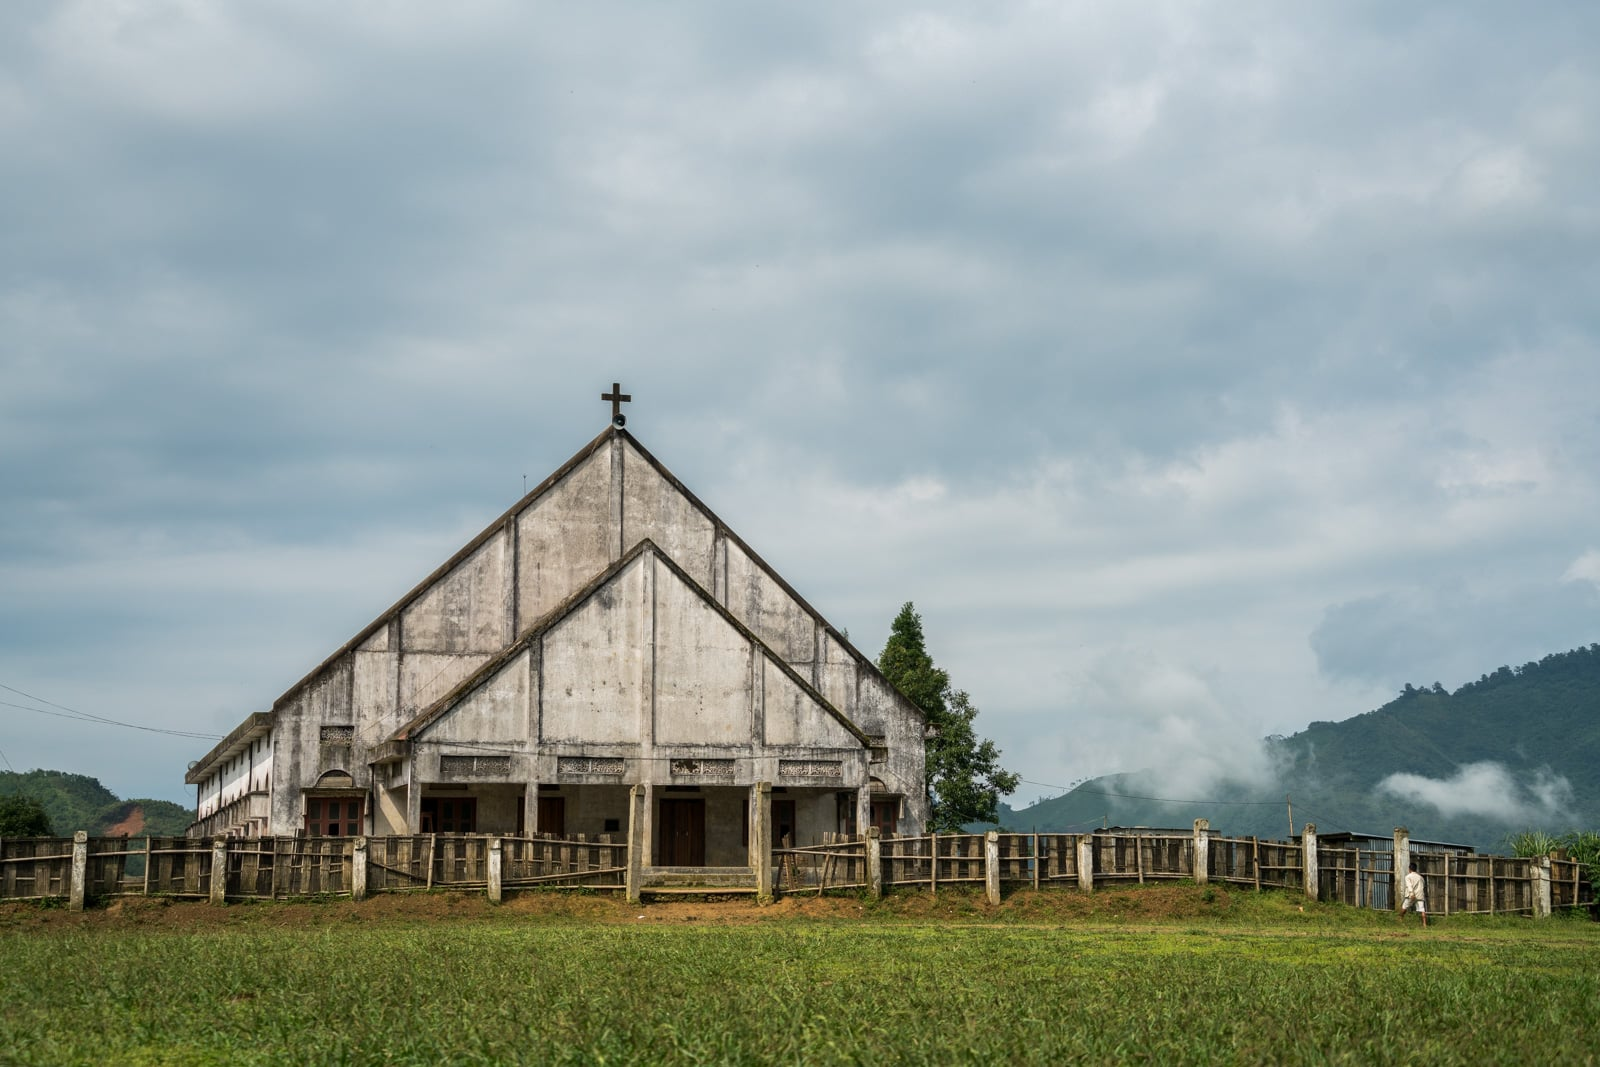 Opium and Jesus and headhunting in Longwa Village, Nagaland, India - Church exterior in Longwa - Lost With Purpose